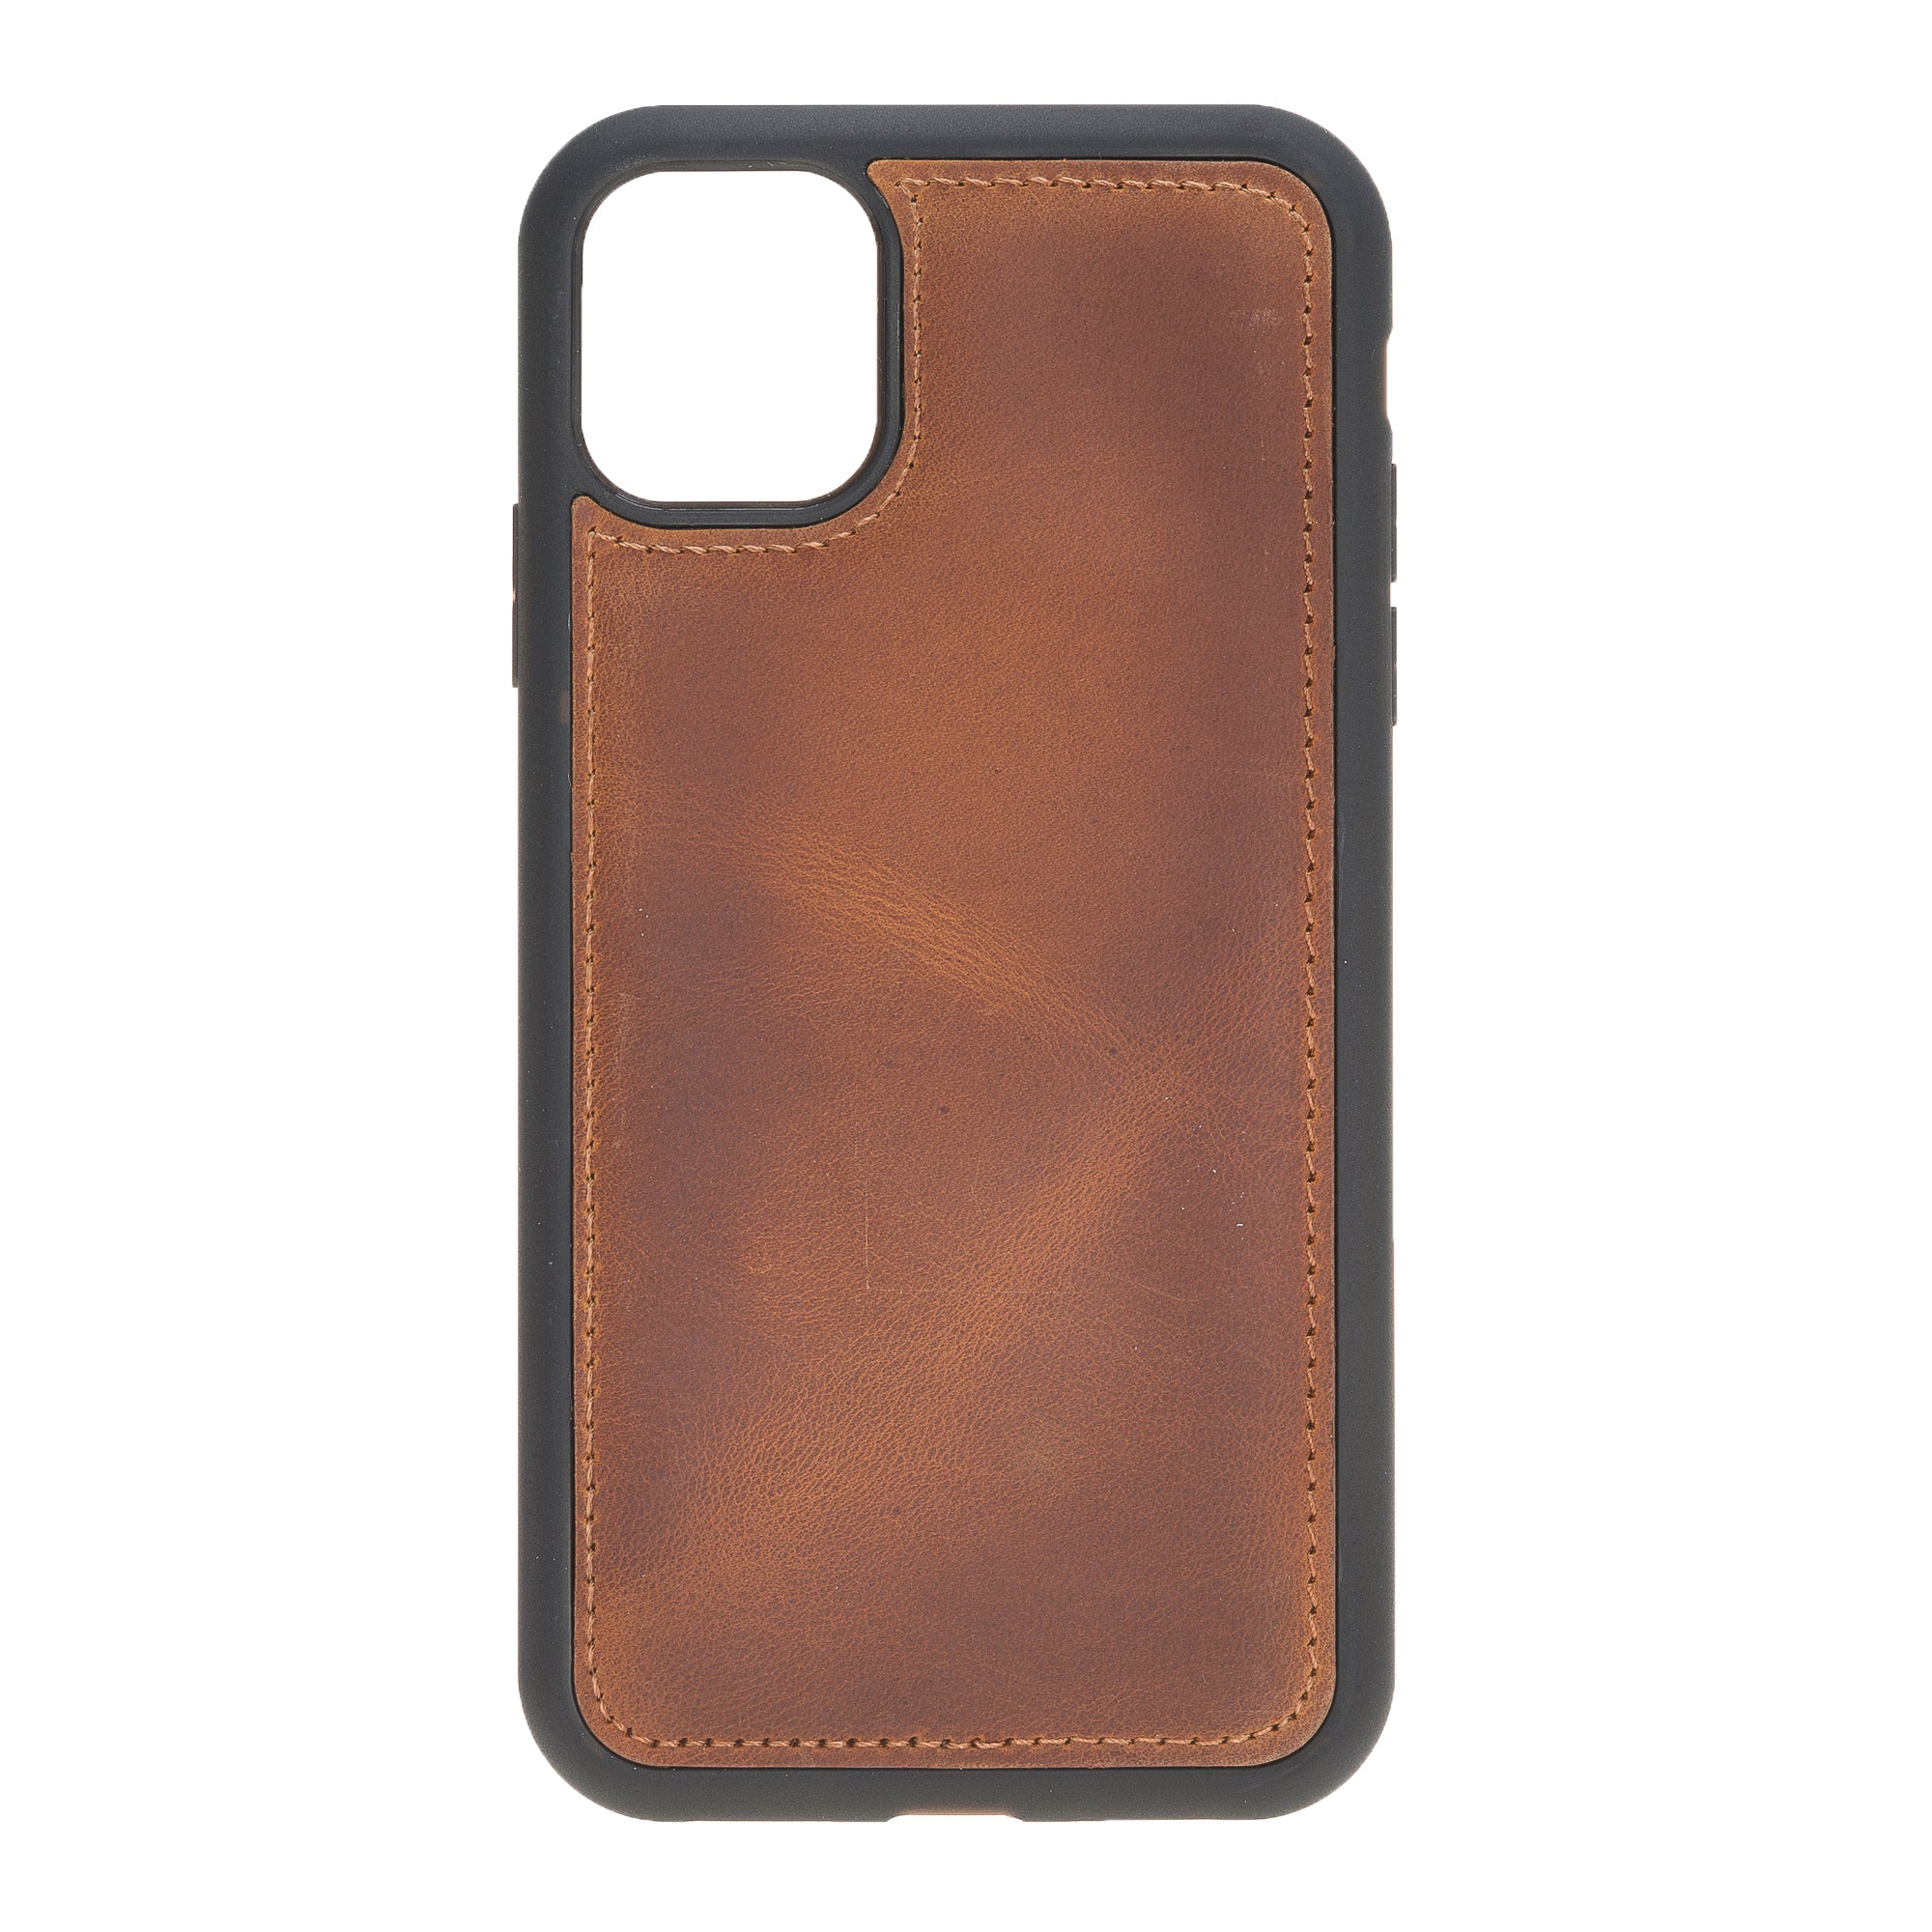 "Vintage Brown Apple iPhone 11 PRO MAX (6.5"") Leather Case"